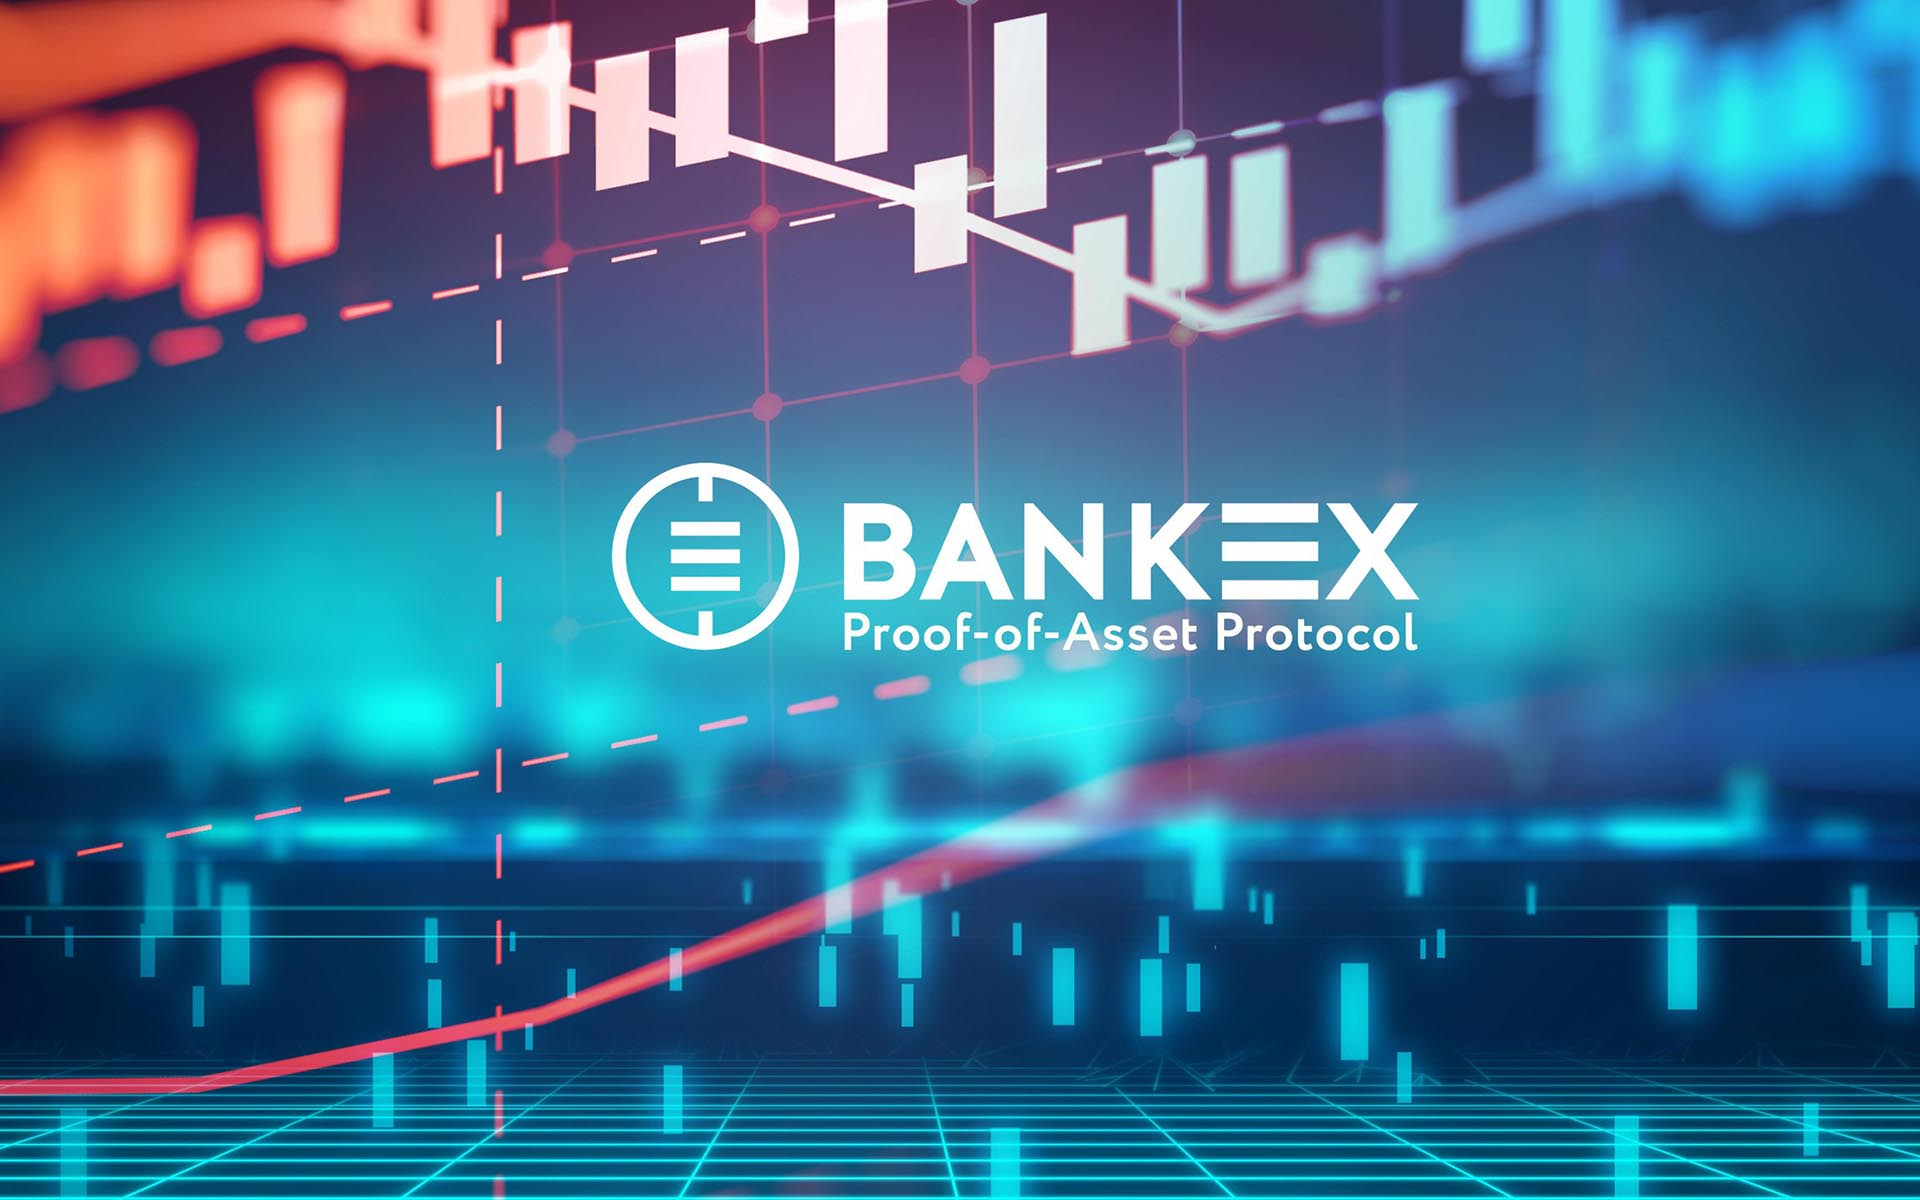 BANKEX Token Listed on Bittrex